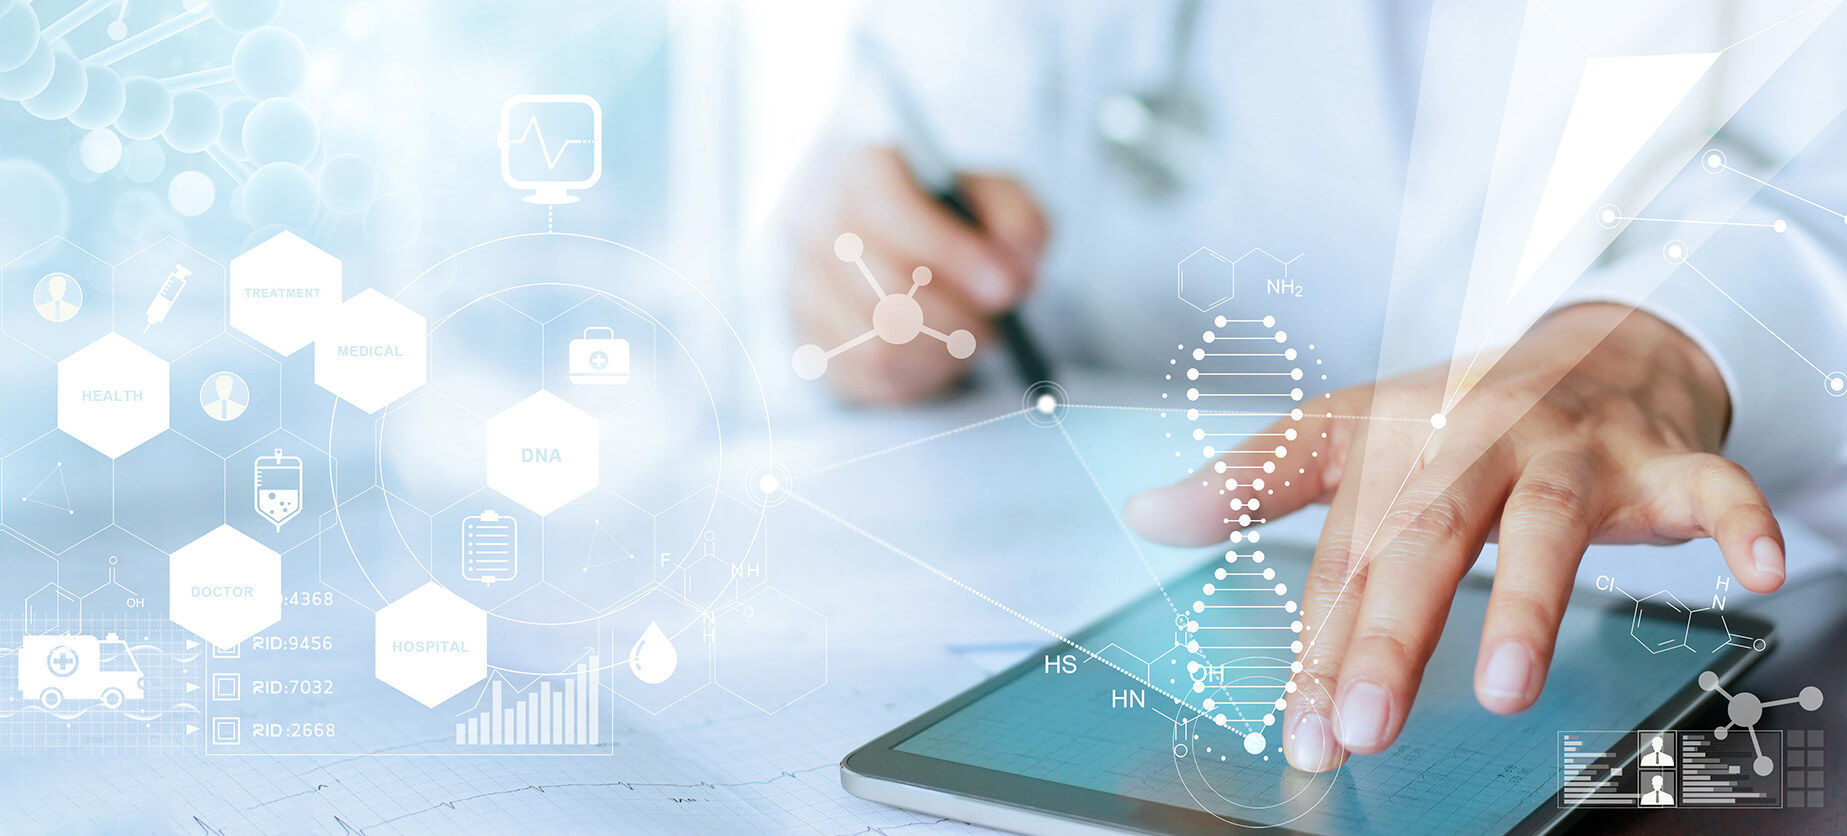 How a Content Management System (CMS) Benefits Healthcare Organizations